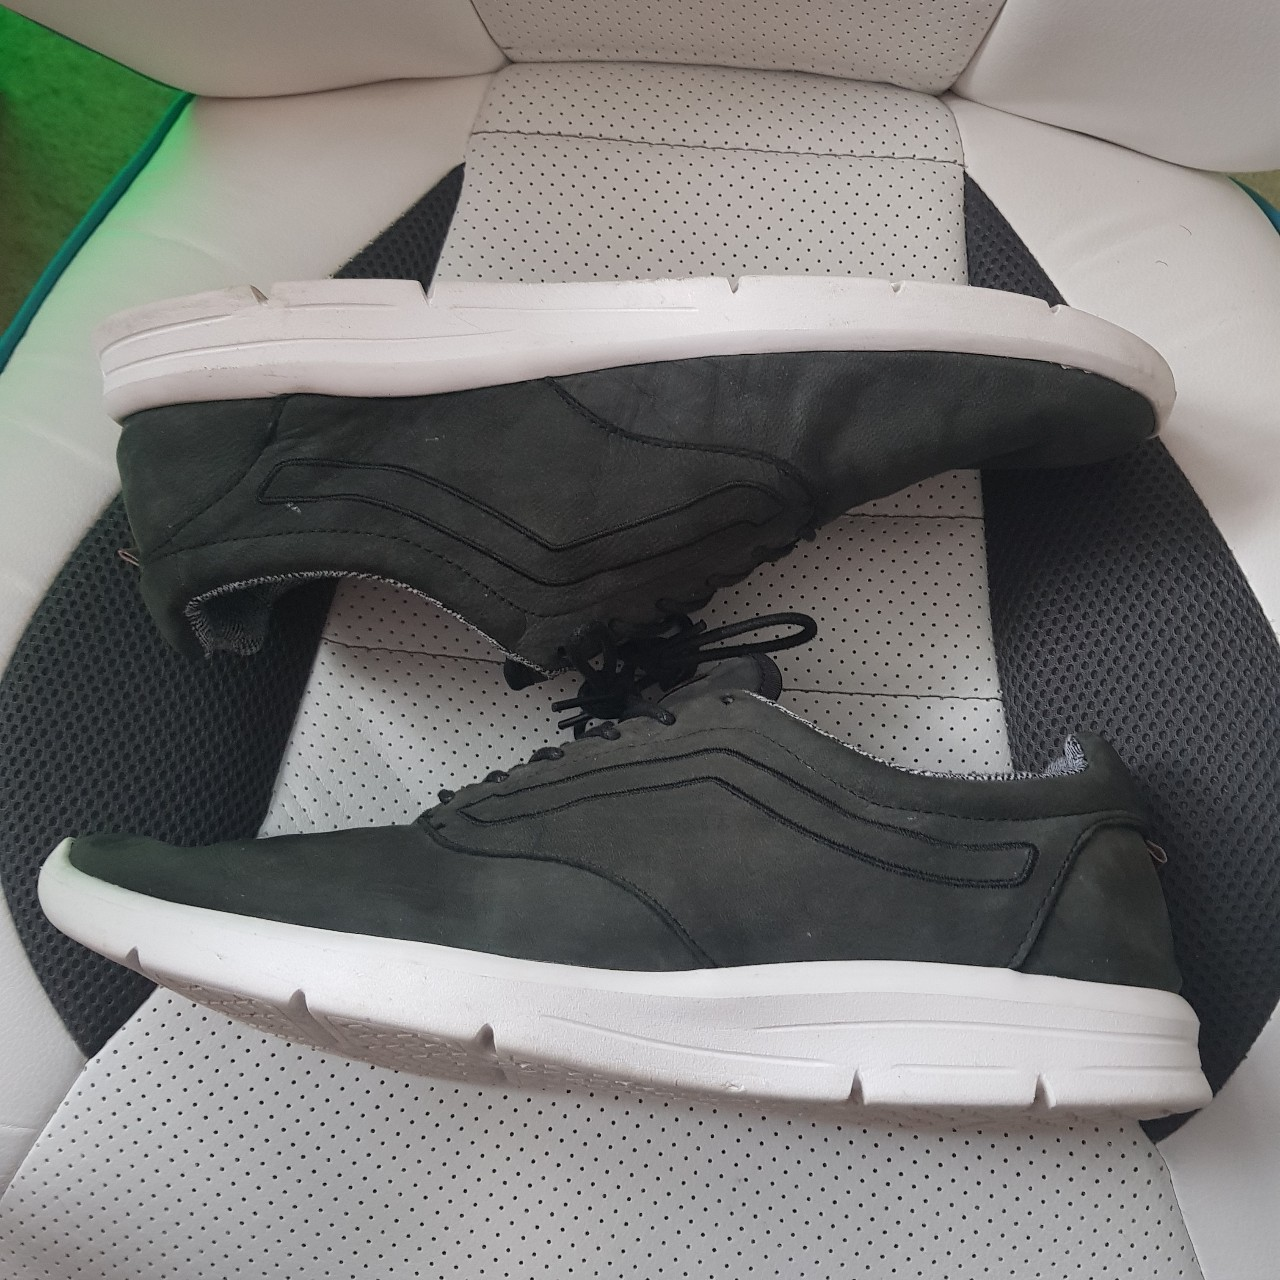 Vans smart shoes worn twice good condition great for...